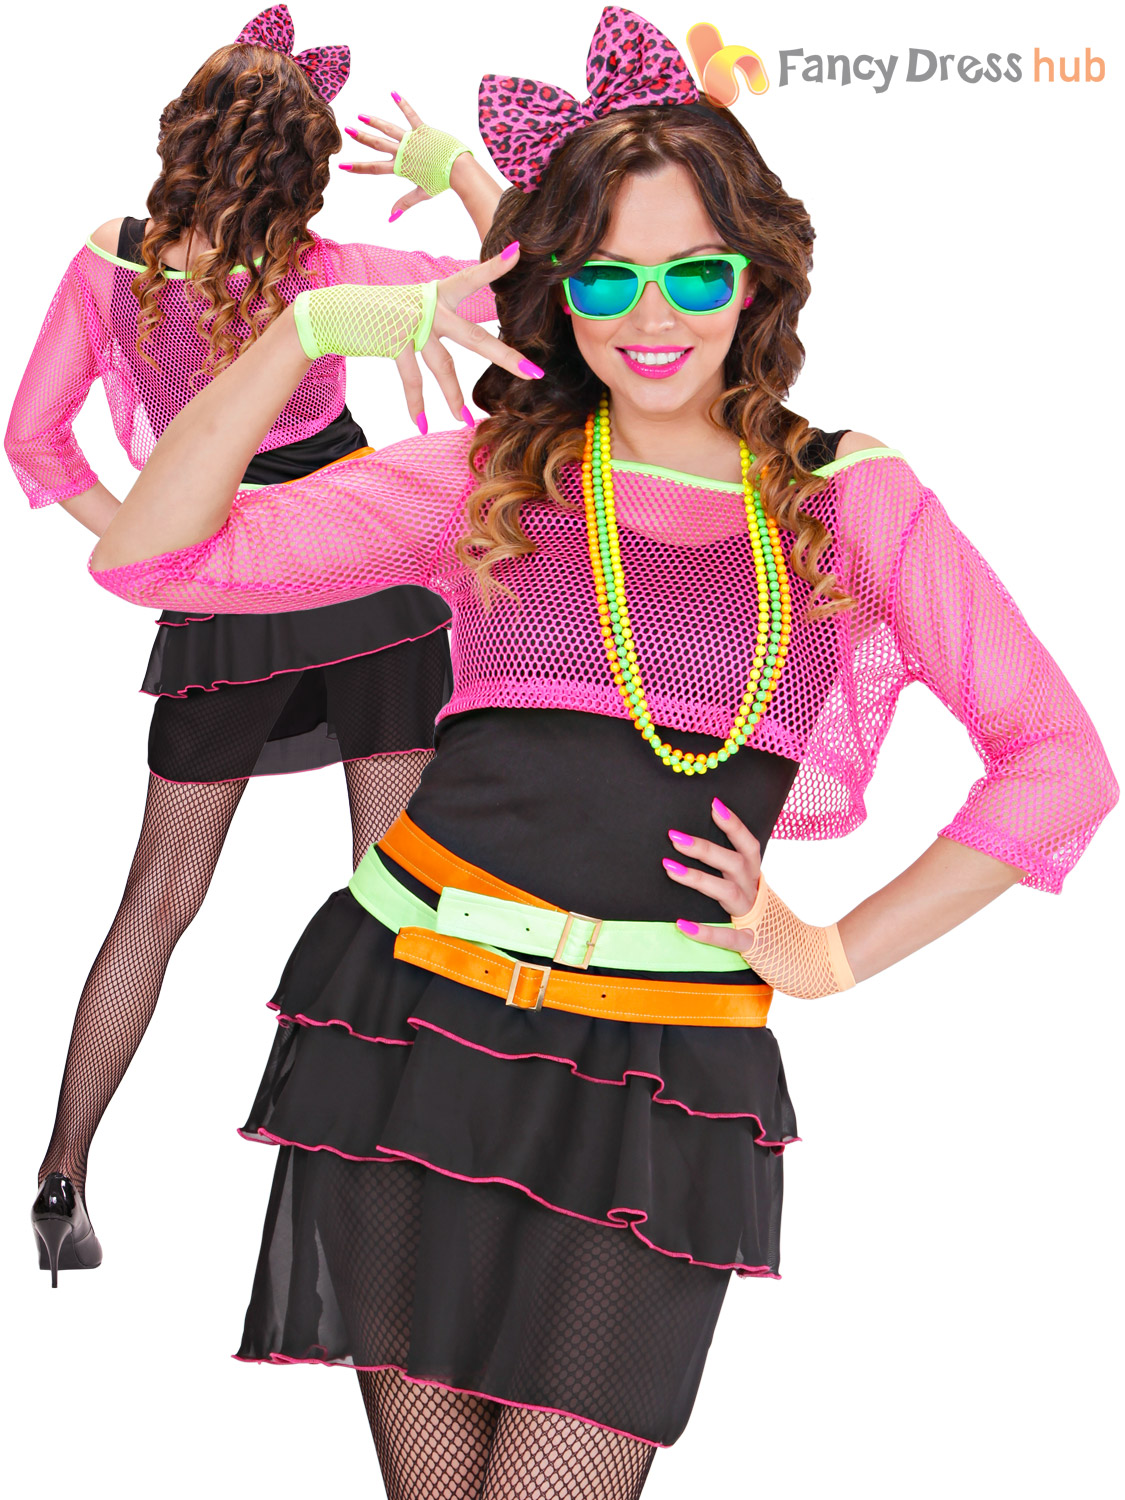 Ladies 1980s Groupie Girl Costume Adults Retro Fancy Dress Woman Dancer Outfit